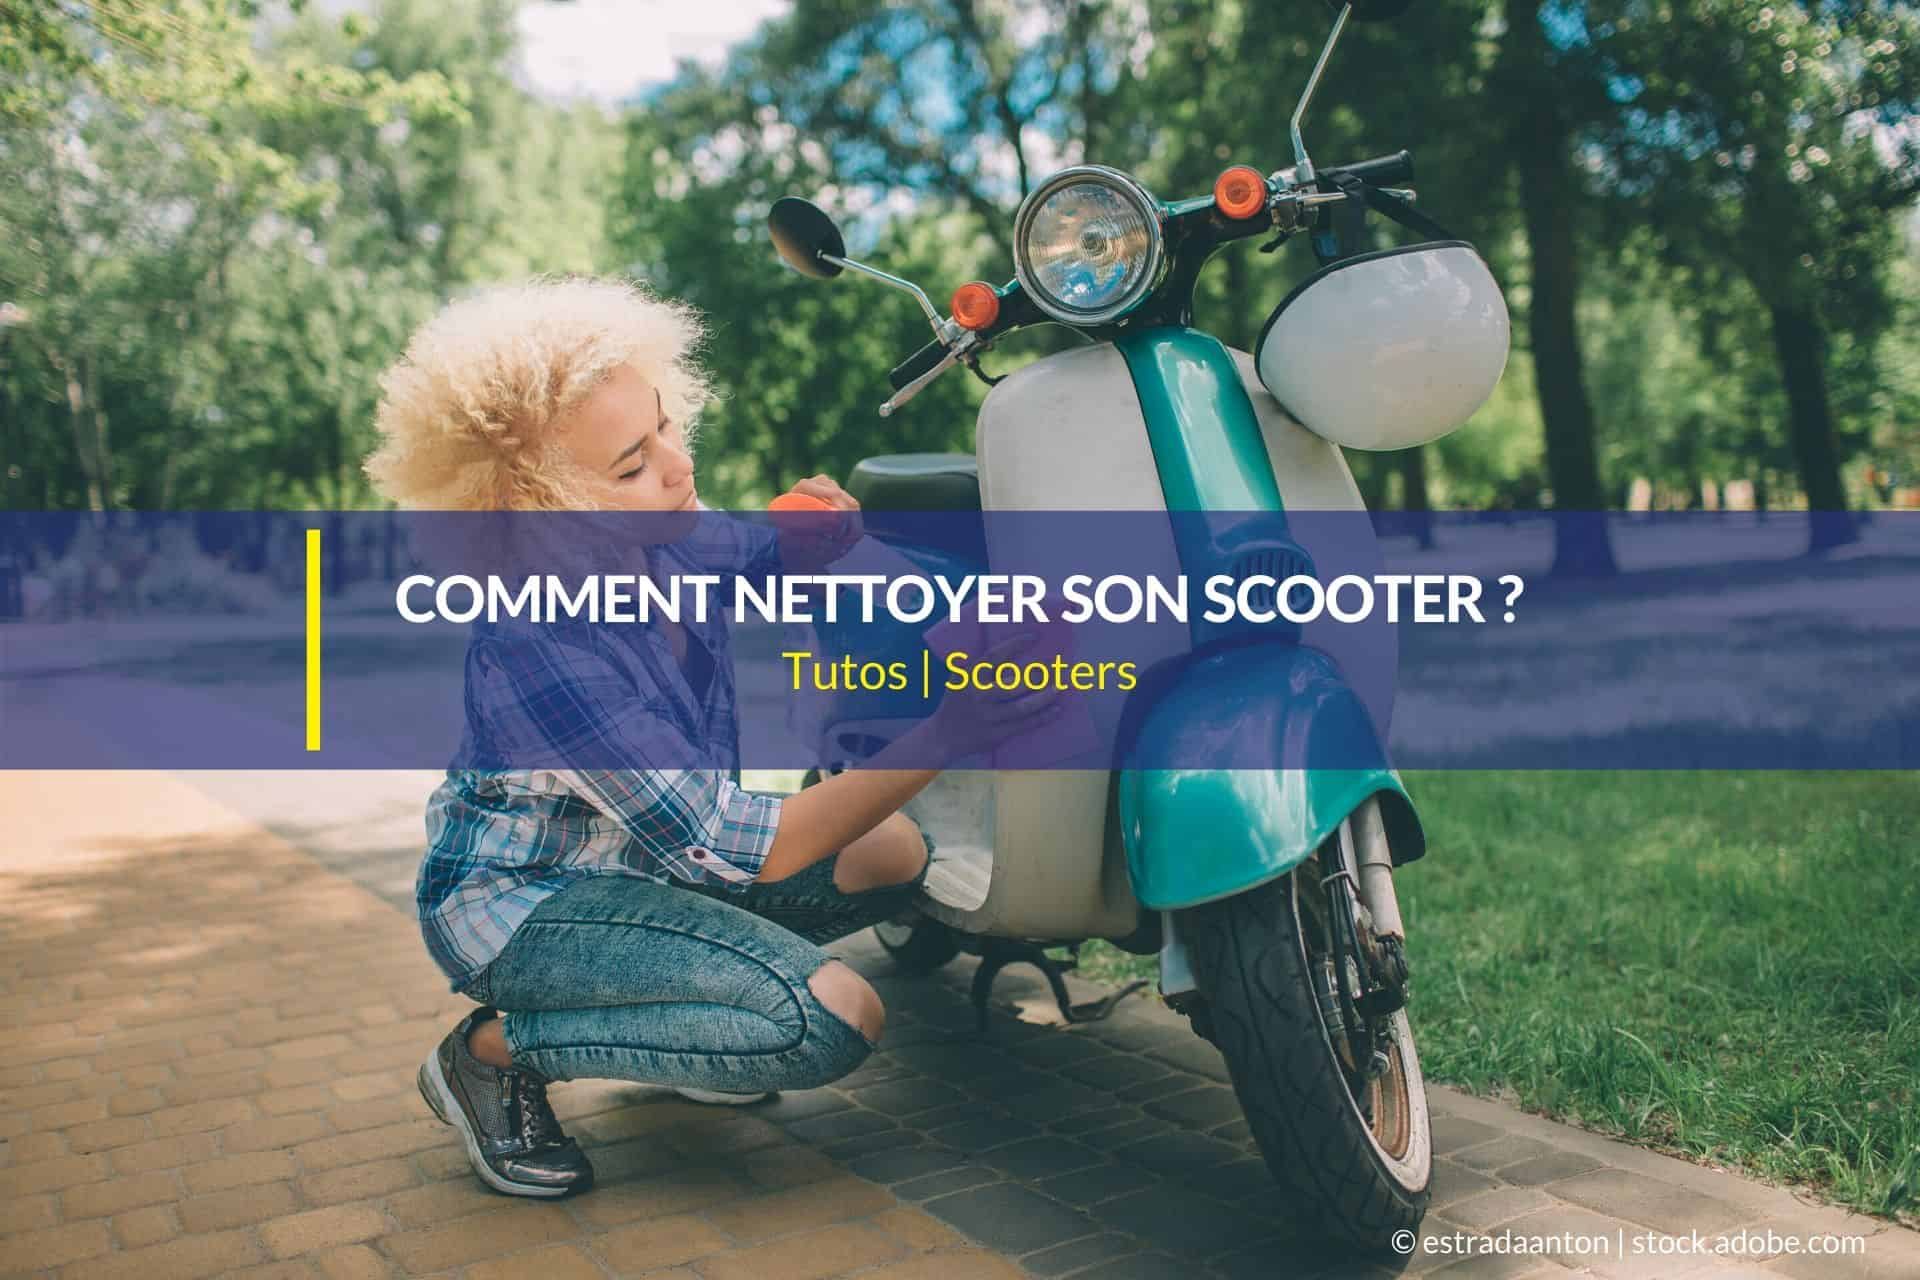 comment nettoyer son scooter